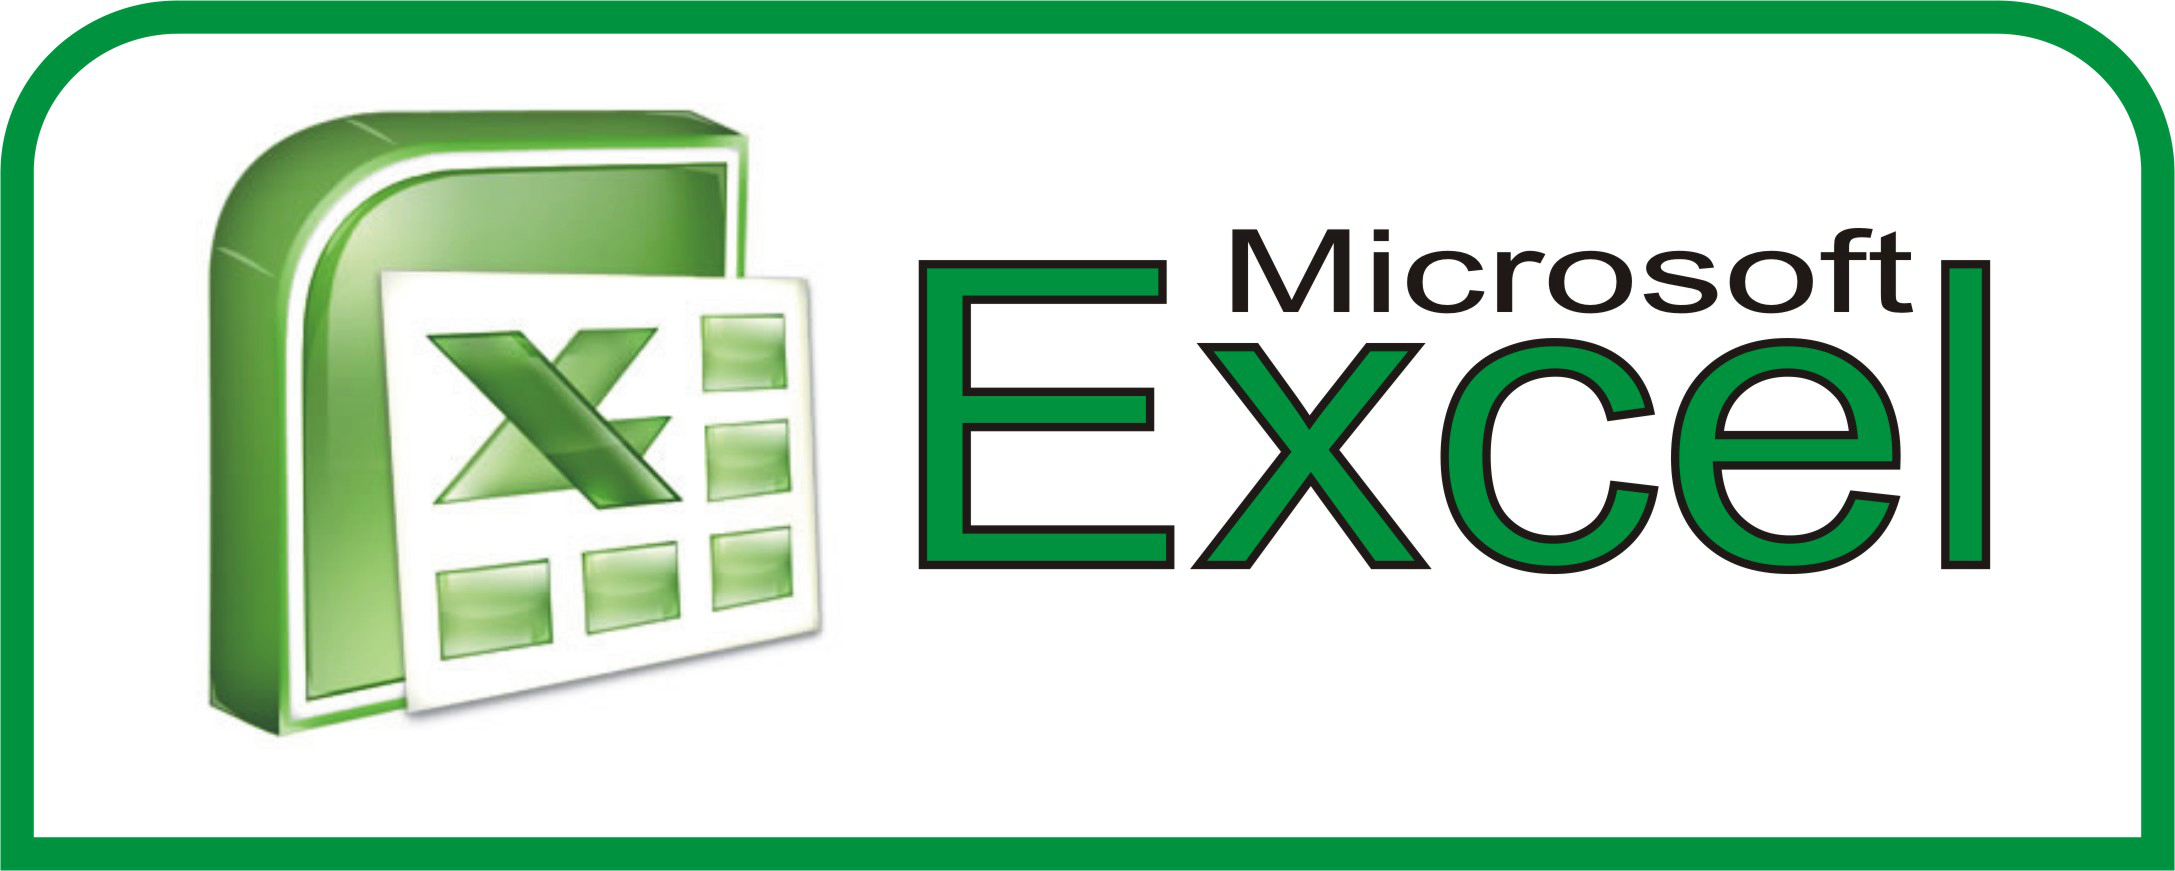 Ediblewildsus  Picturesque  Excel Shortcuts You Probably Didnt Know About  Techdissected With Fetching Excel Proposal Template Besides Excel Use Cell Value In Formula Furthermore Debt Calculator Excel With Amazing Multiply Symbol In Excel Also Add Ins Excel  In Addition Excel Training Houston And Excel Visual Basic Tutorial As Well As Spell Currency In Excel  Additionally Teaching Yourself Excel From Techdissectedcom With Ediblewildsus  Fetching  Excel Shortcuts You Probably Didnt Know About  Techdissected With Amazing Excel Proposal Template Besides Excel Use Cell Value In Formula Furthermore Debt Calculator Excel And Picturesque Multiply Symbol In Excel Also Add Ins Excel  In Addition Excel Training Houston From Techdissectedcom